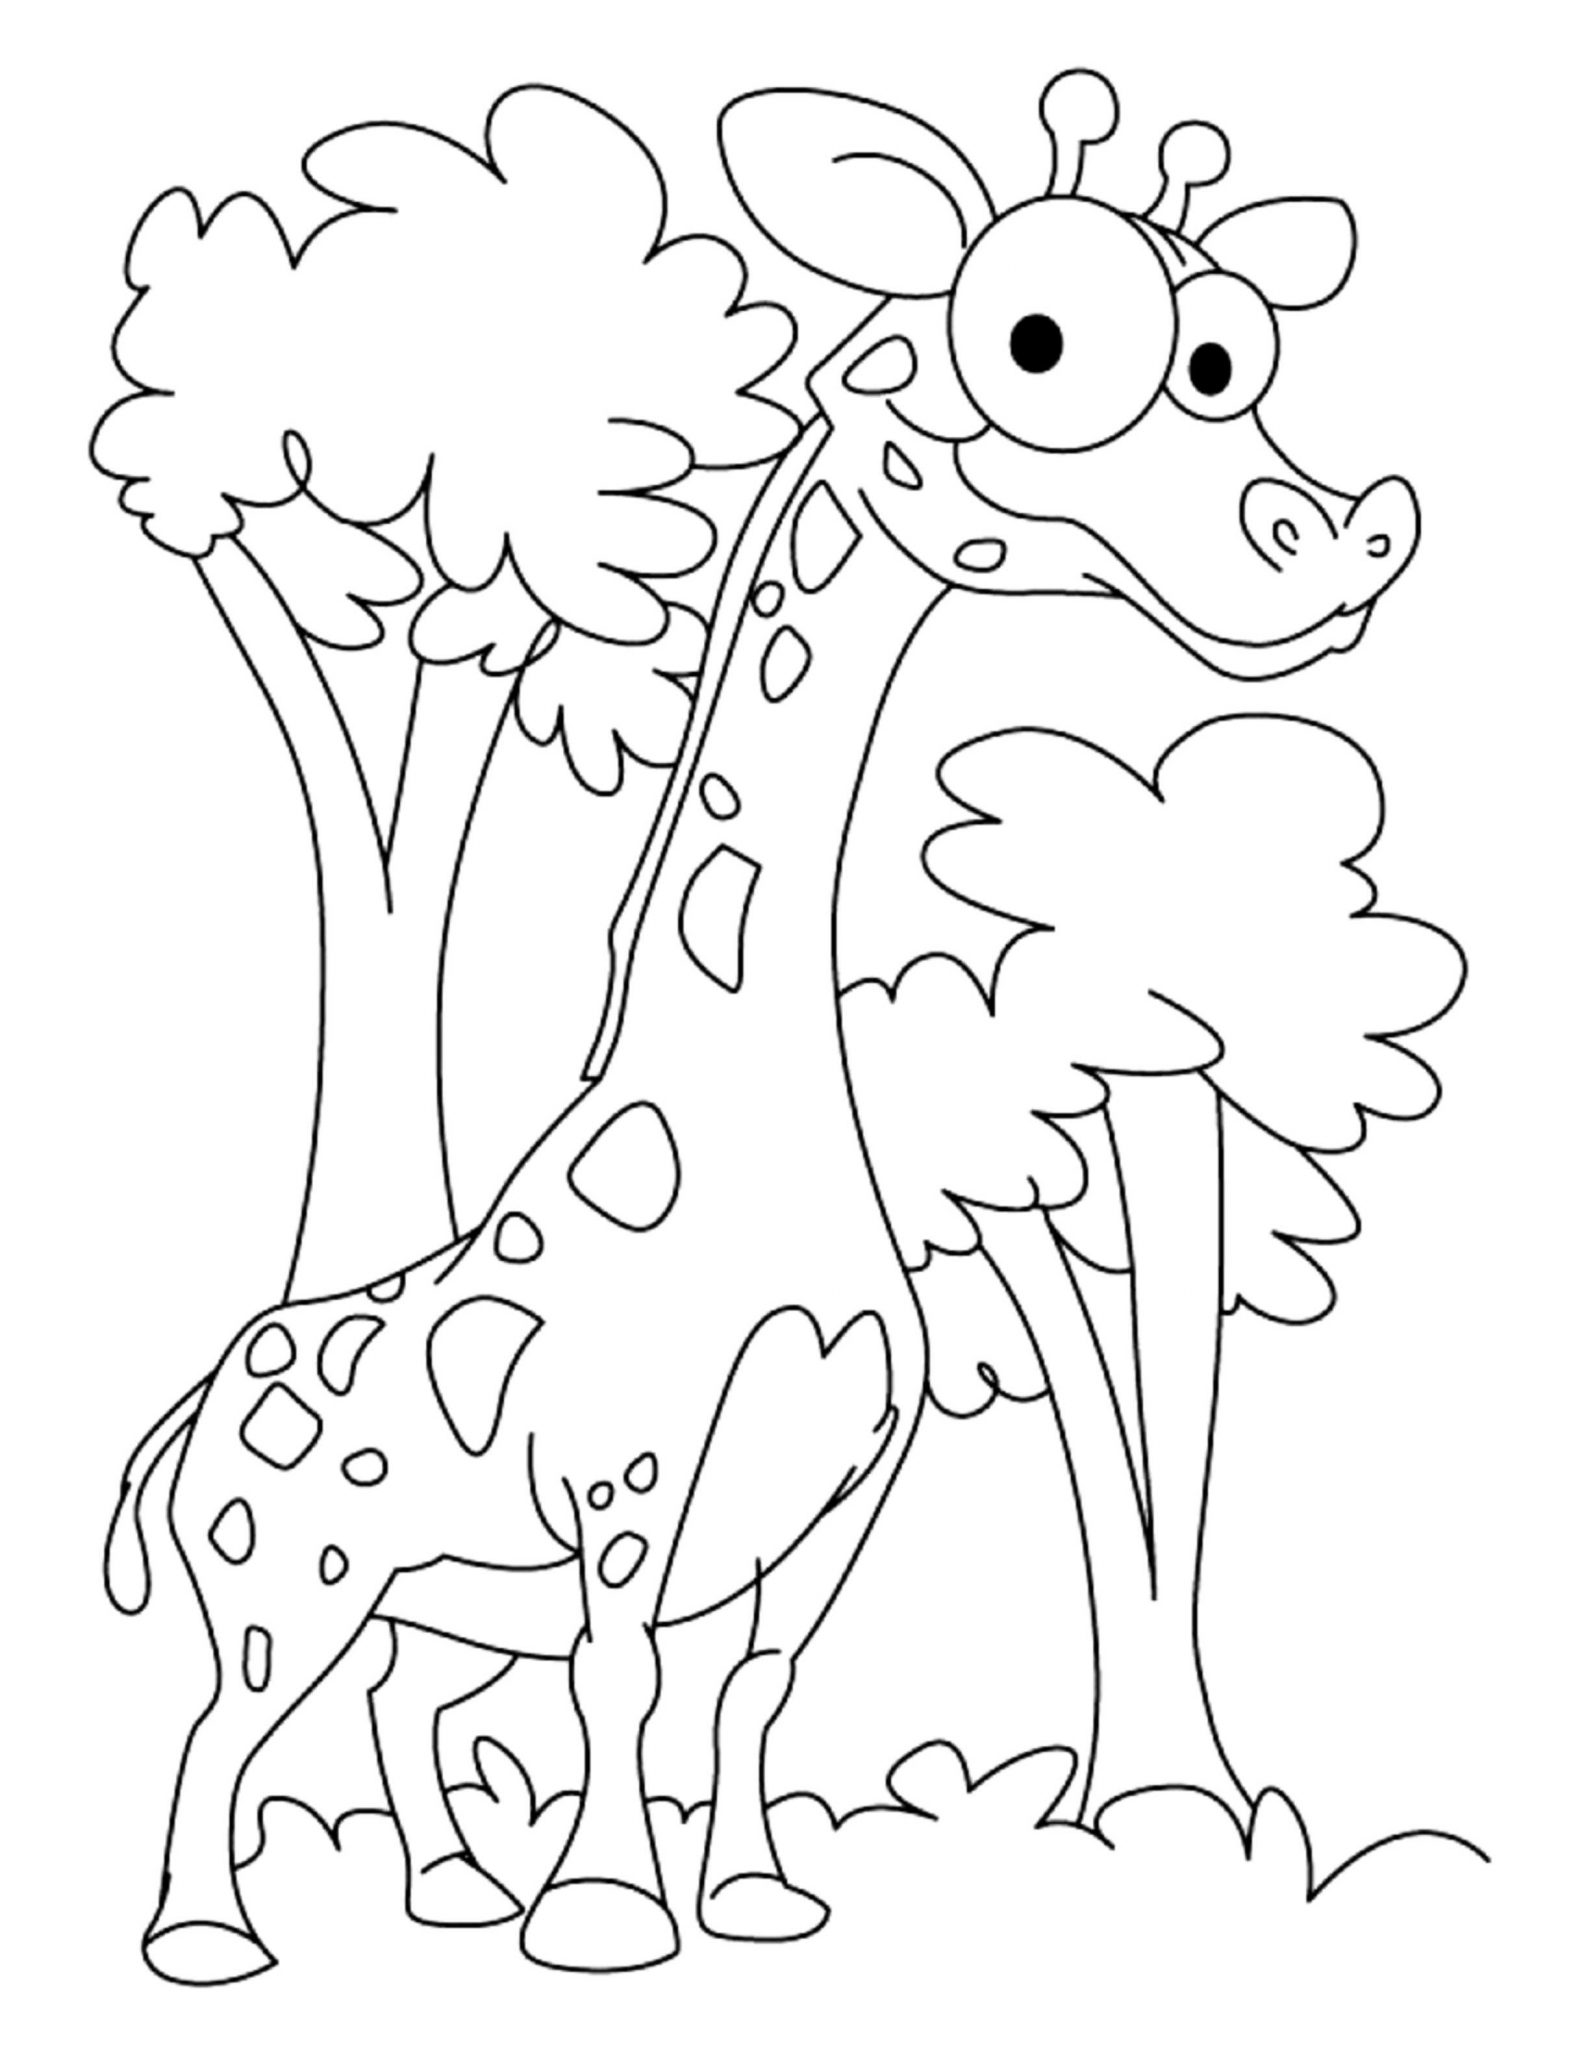 colouring pages of giraffe free printable giraffe coloring pages for kids colouring of pages giraffe